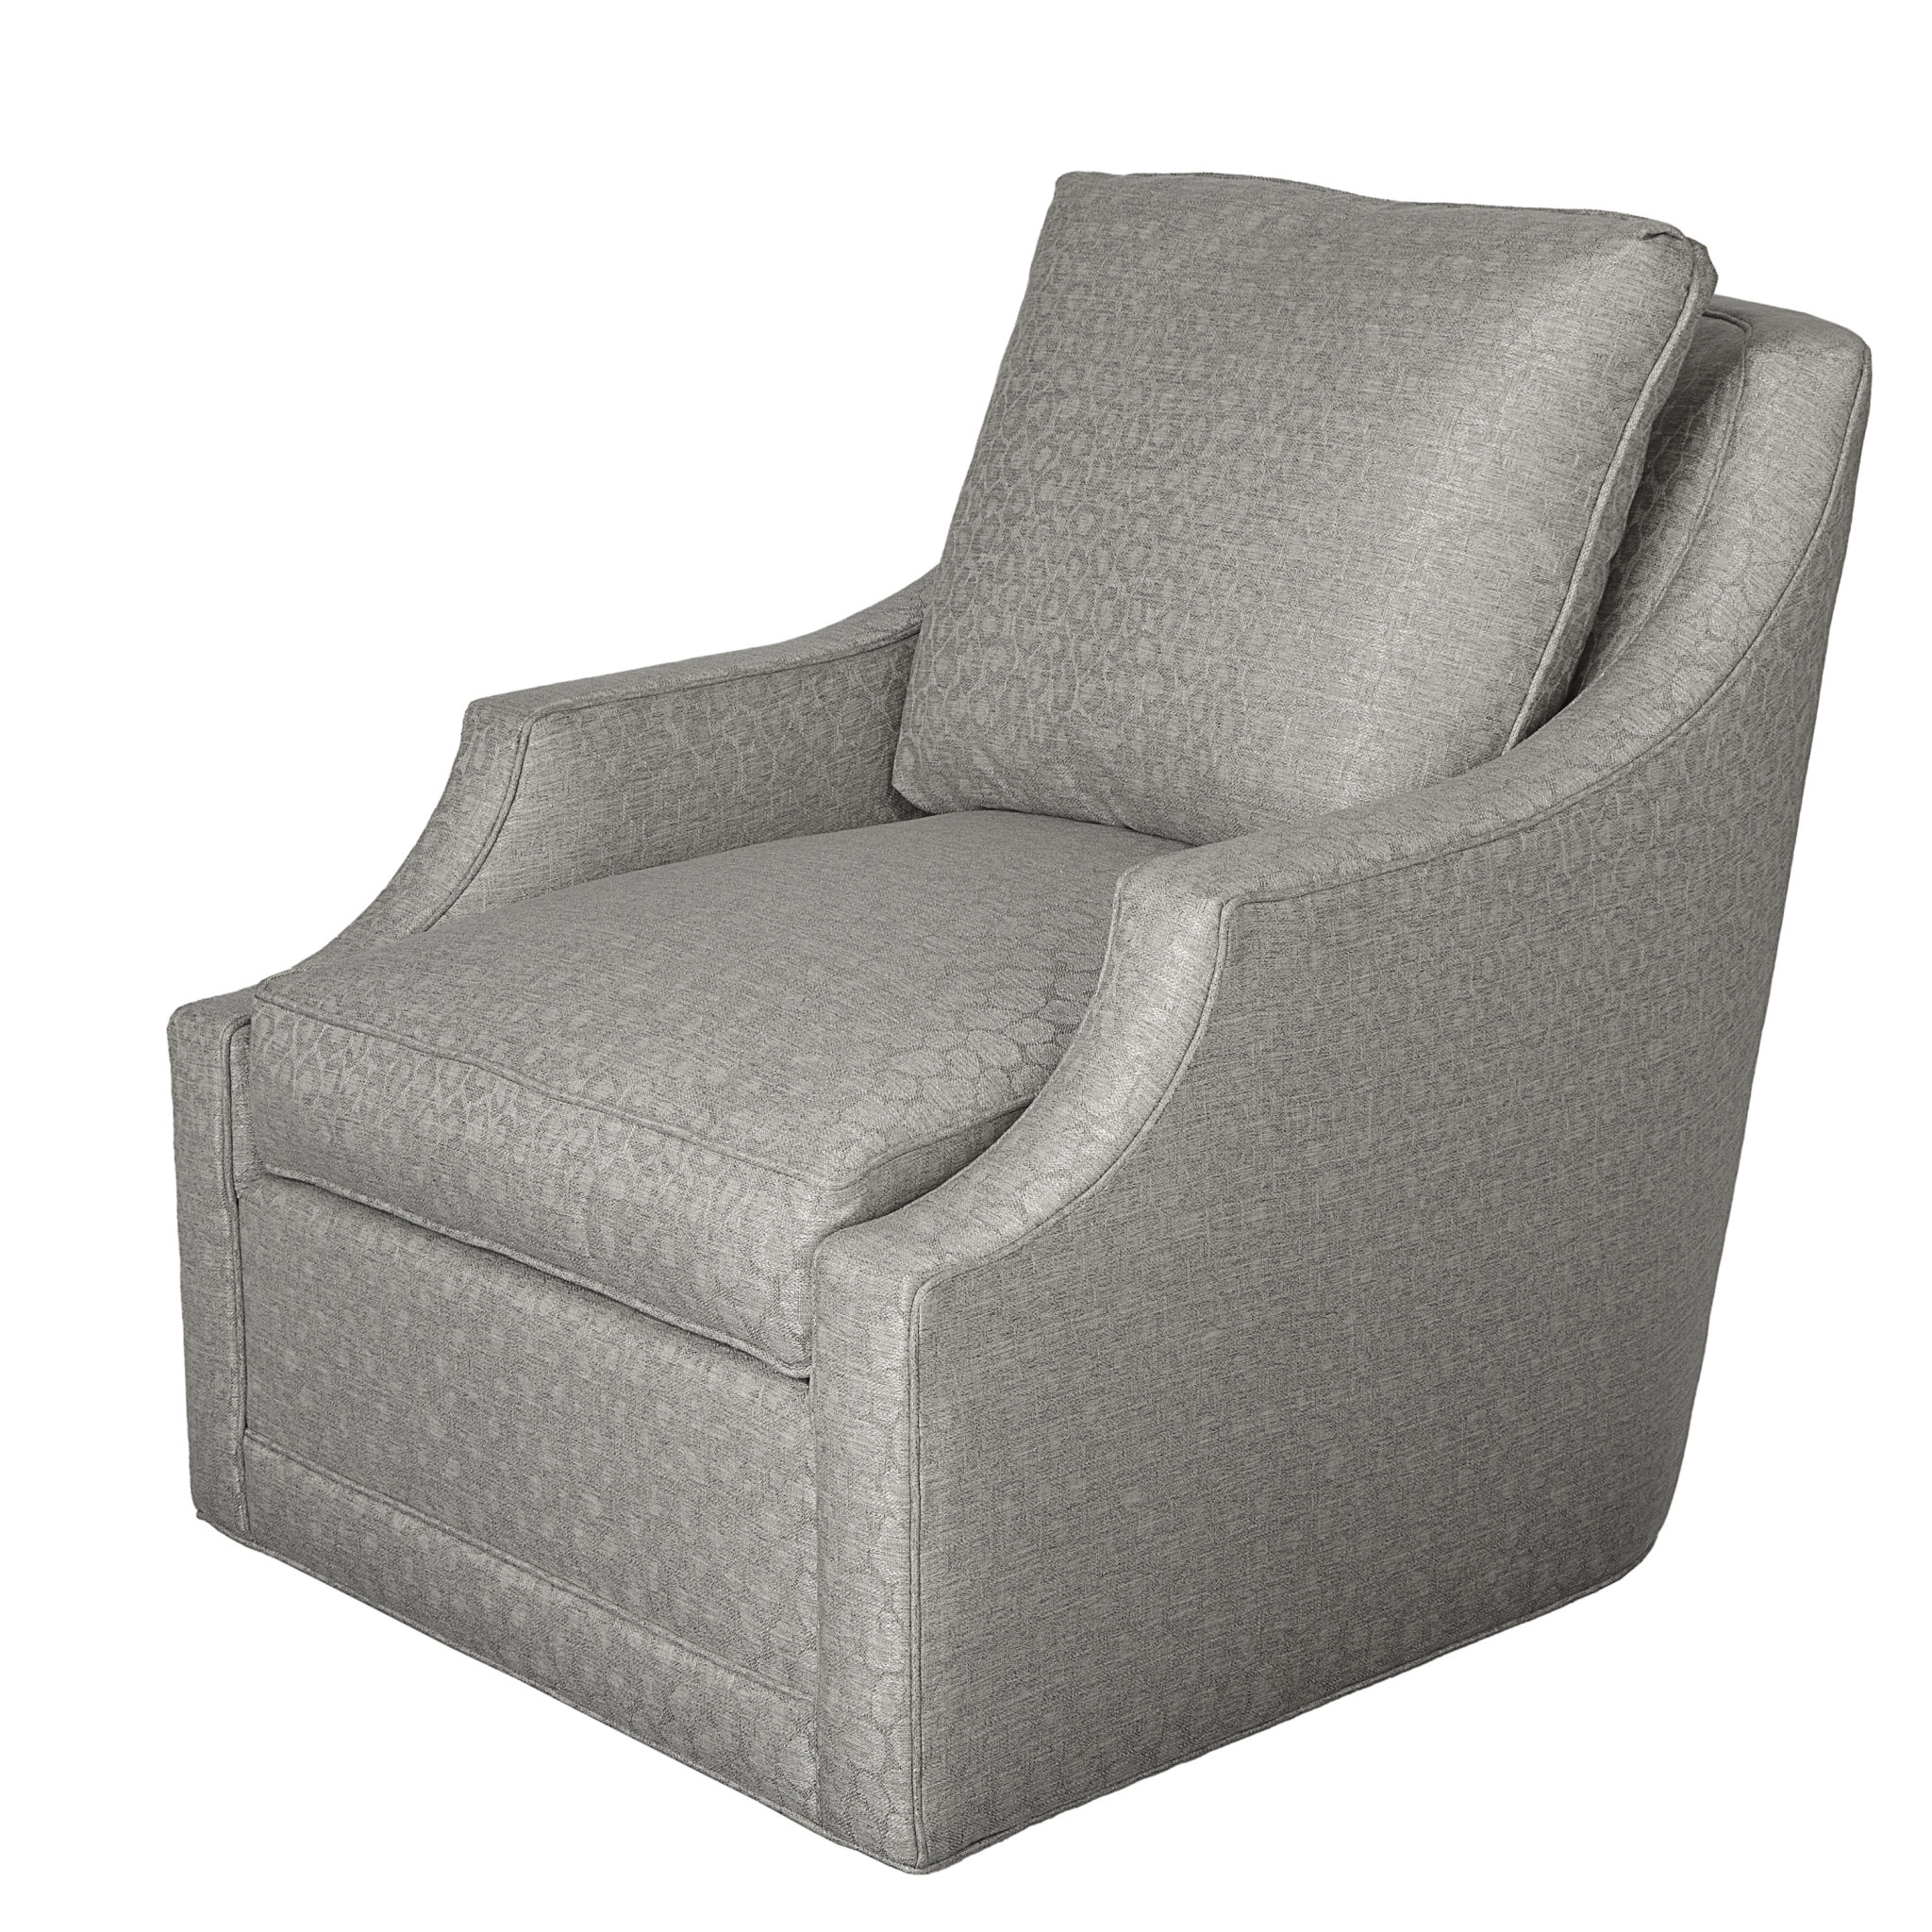 RYLEE SWIVEL CHAIR - TITO